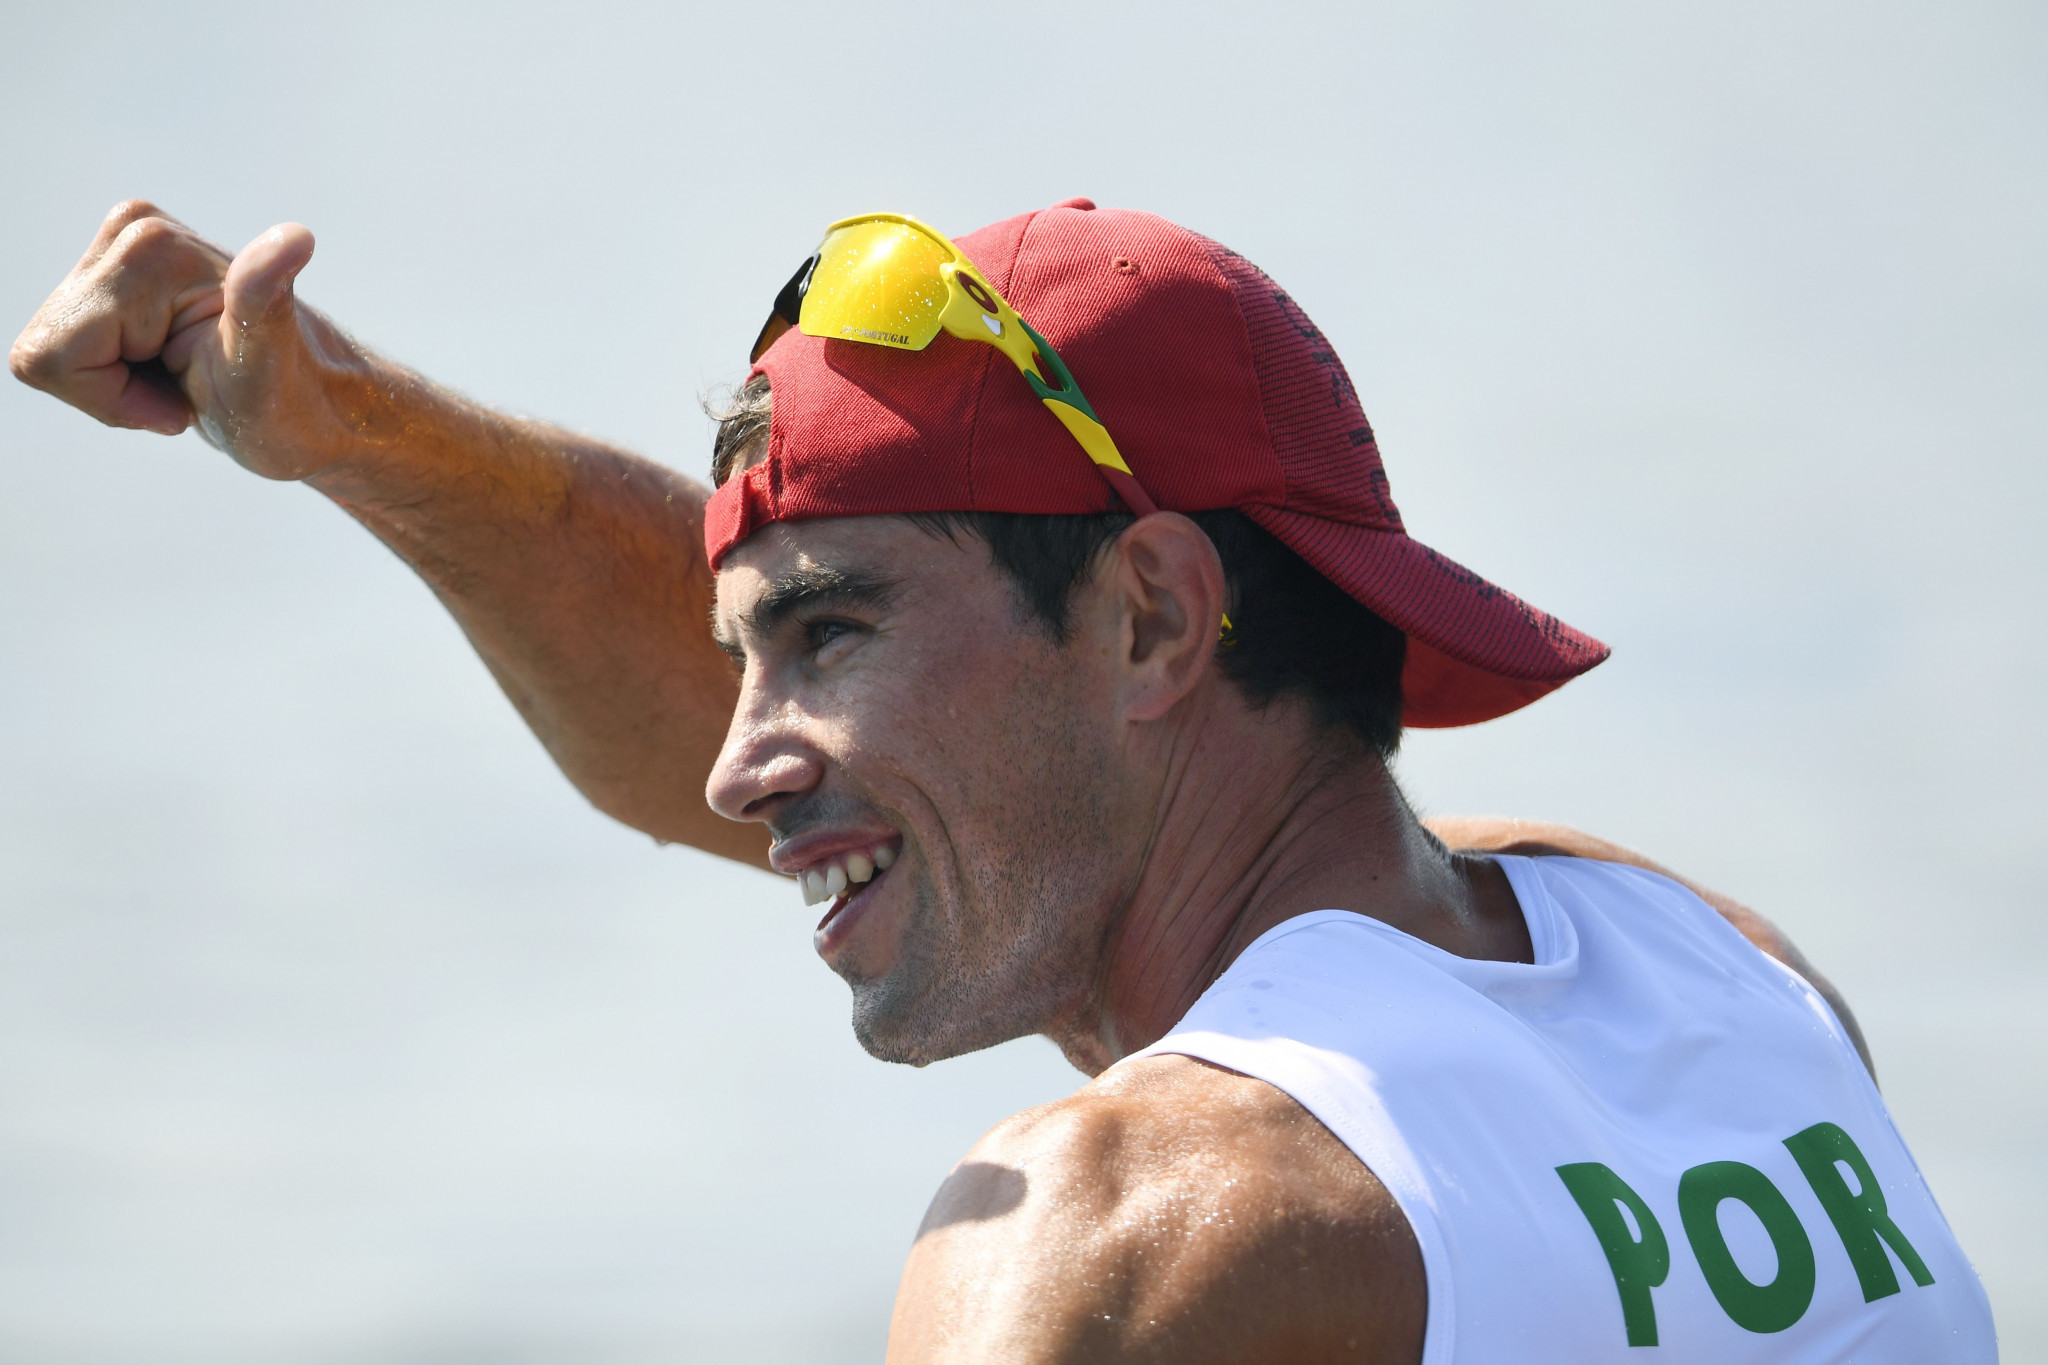 Pimenta dominates in men's K1 500m and 1000m semi-finals at ICF Canoe Sprint World Cup